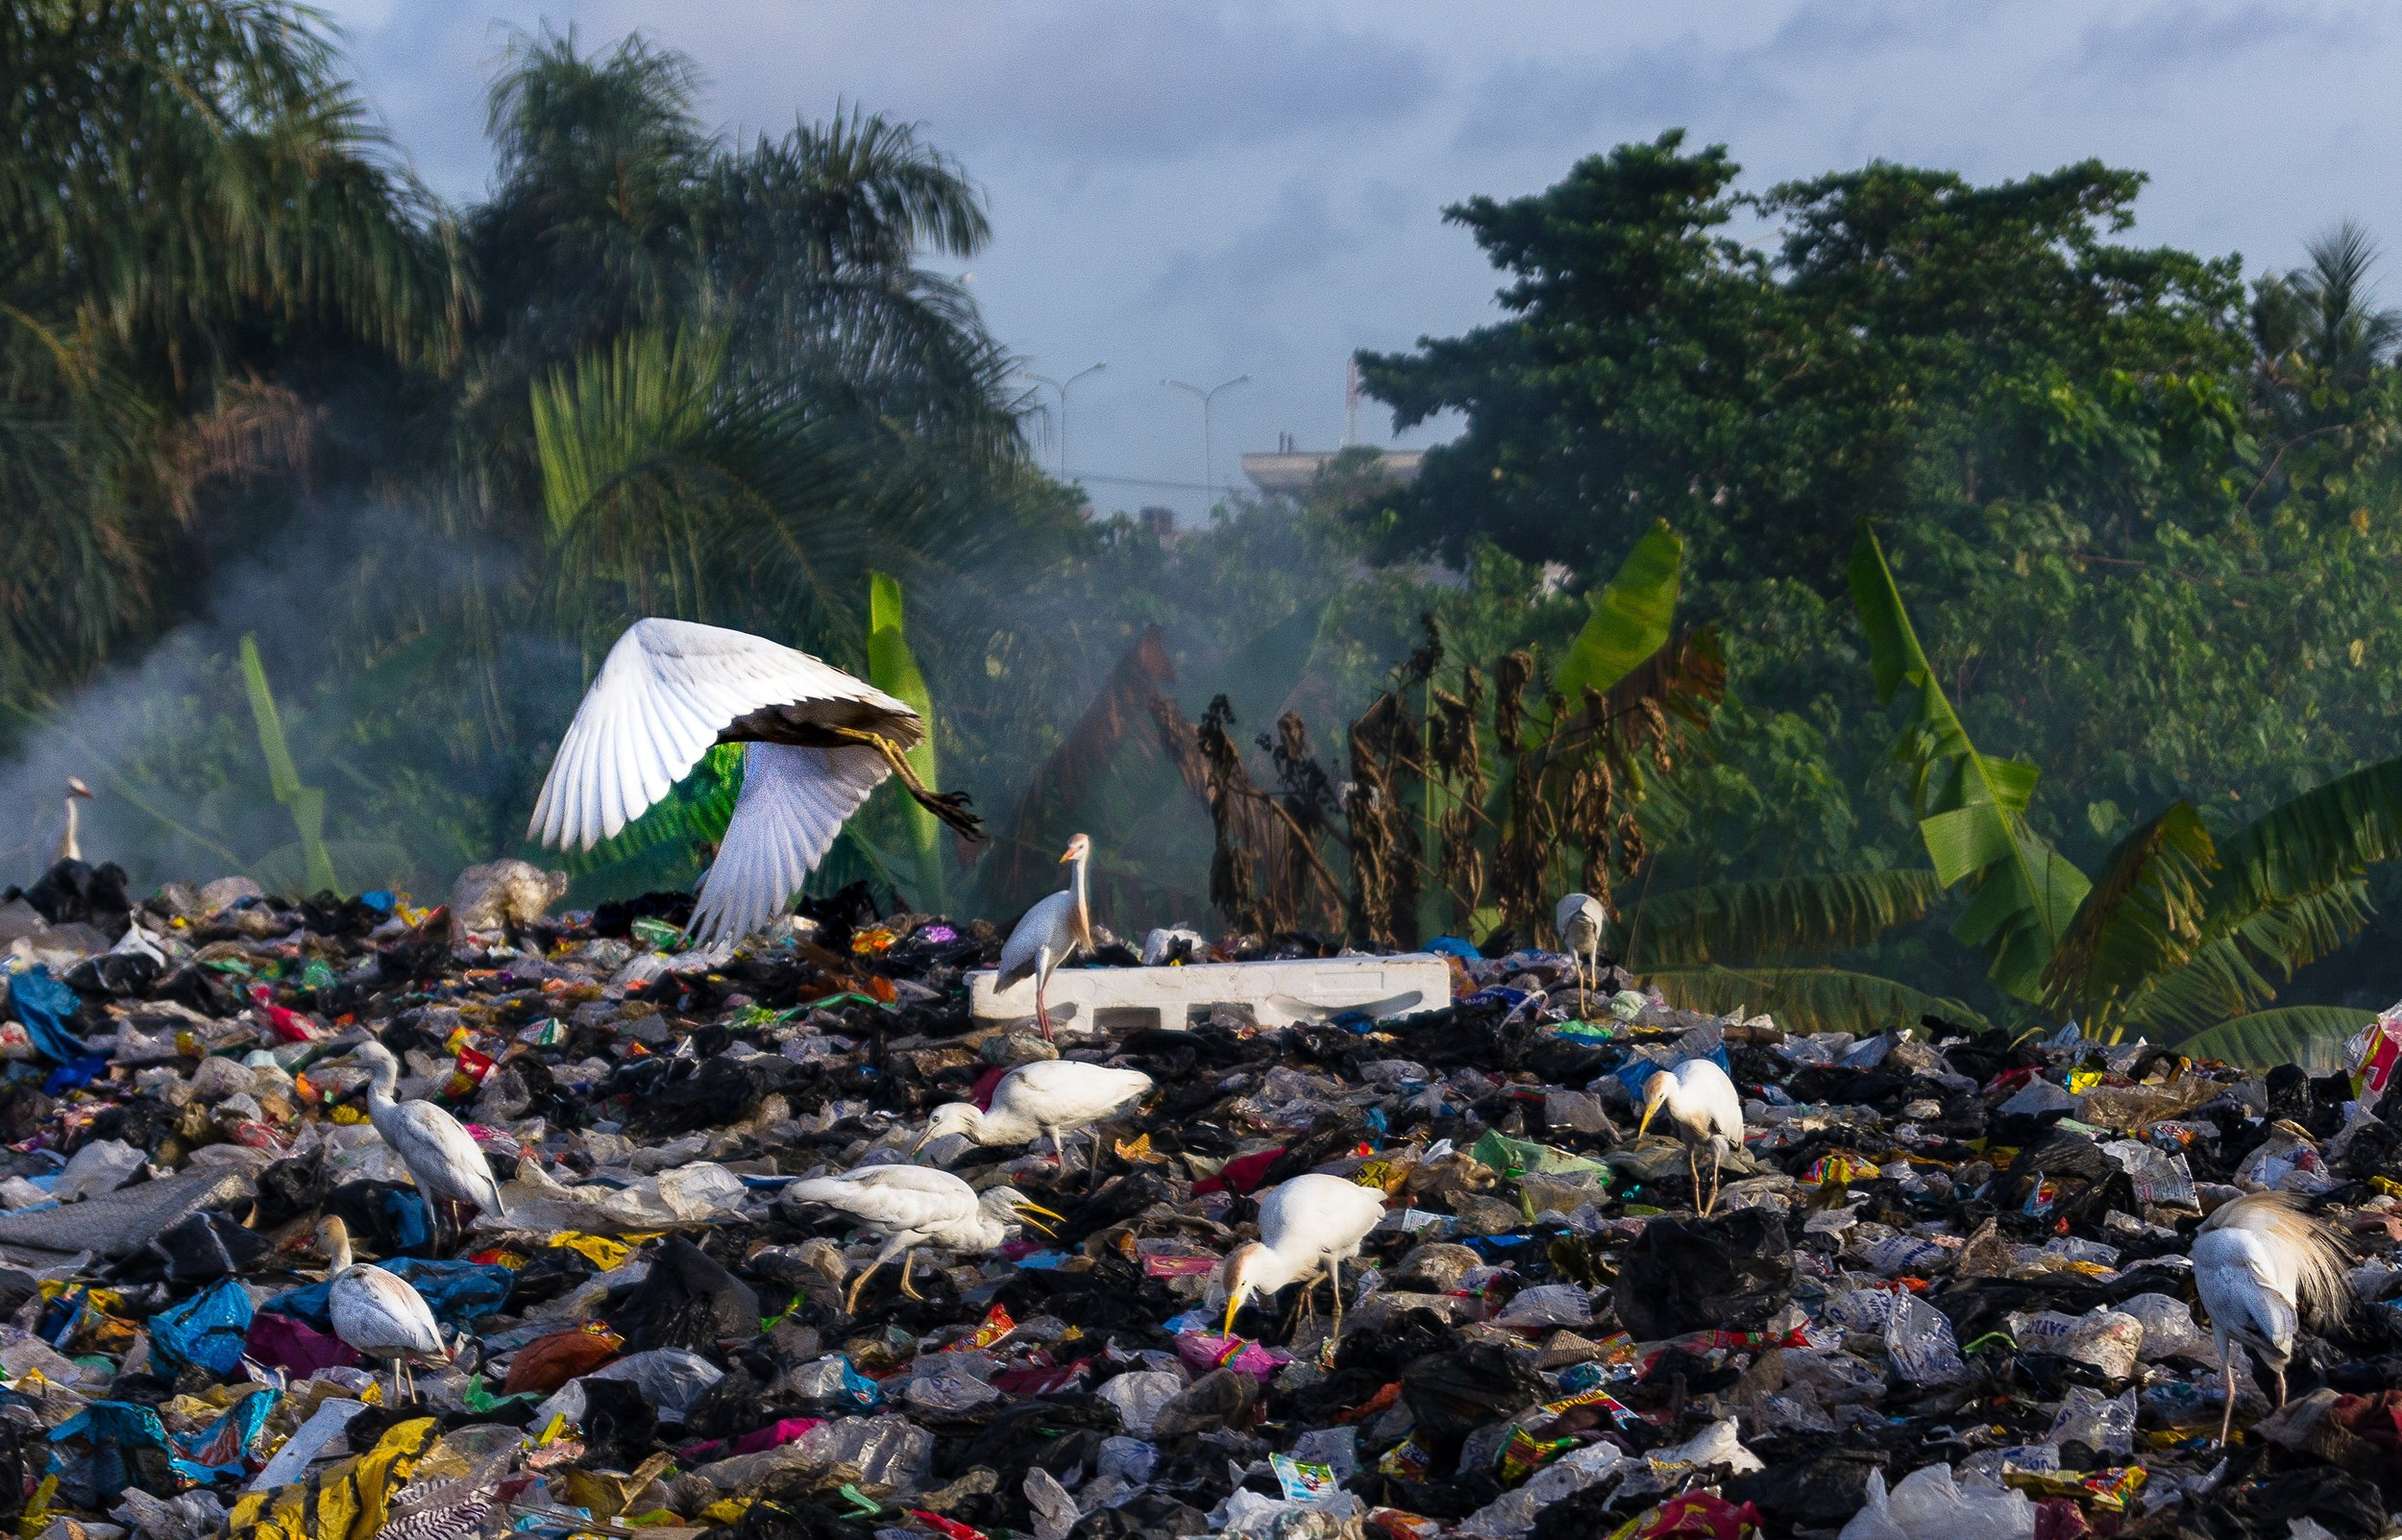 WE HAVE BECOME A HYPER- DISPOSABLE PLANET - And recycling validates the production of waste, which means we need a variety of alternative solutions to move beyond disposability.